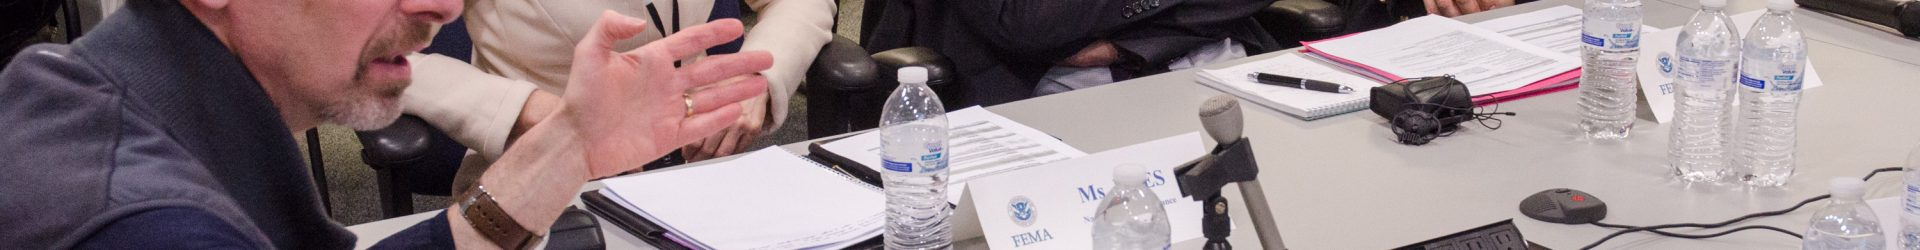 EMSI Provides Nuclear and Radiological Incident Management Training to NJ Emergency Management Officials